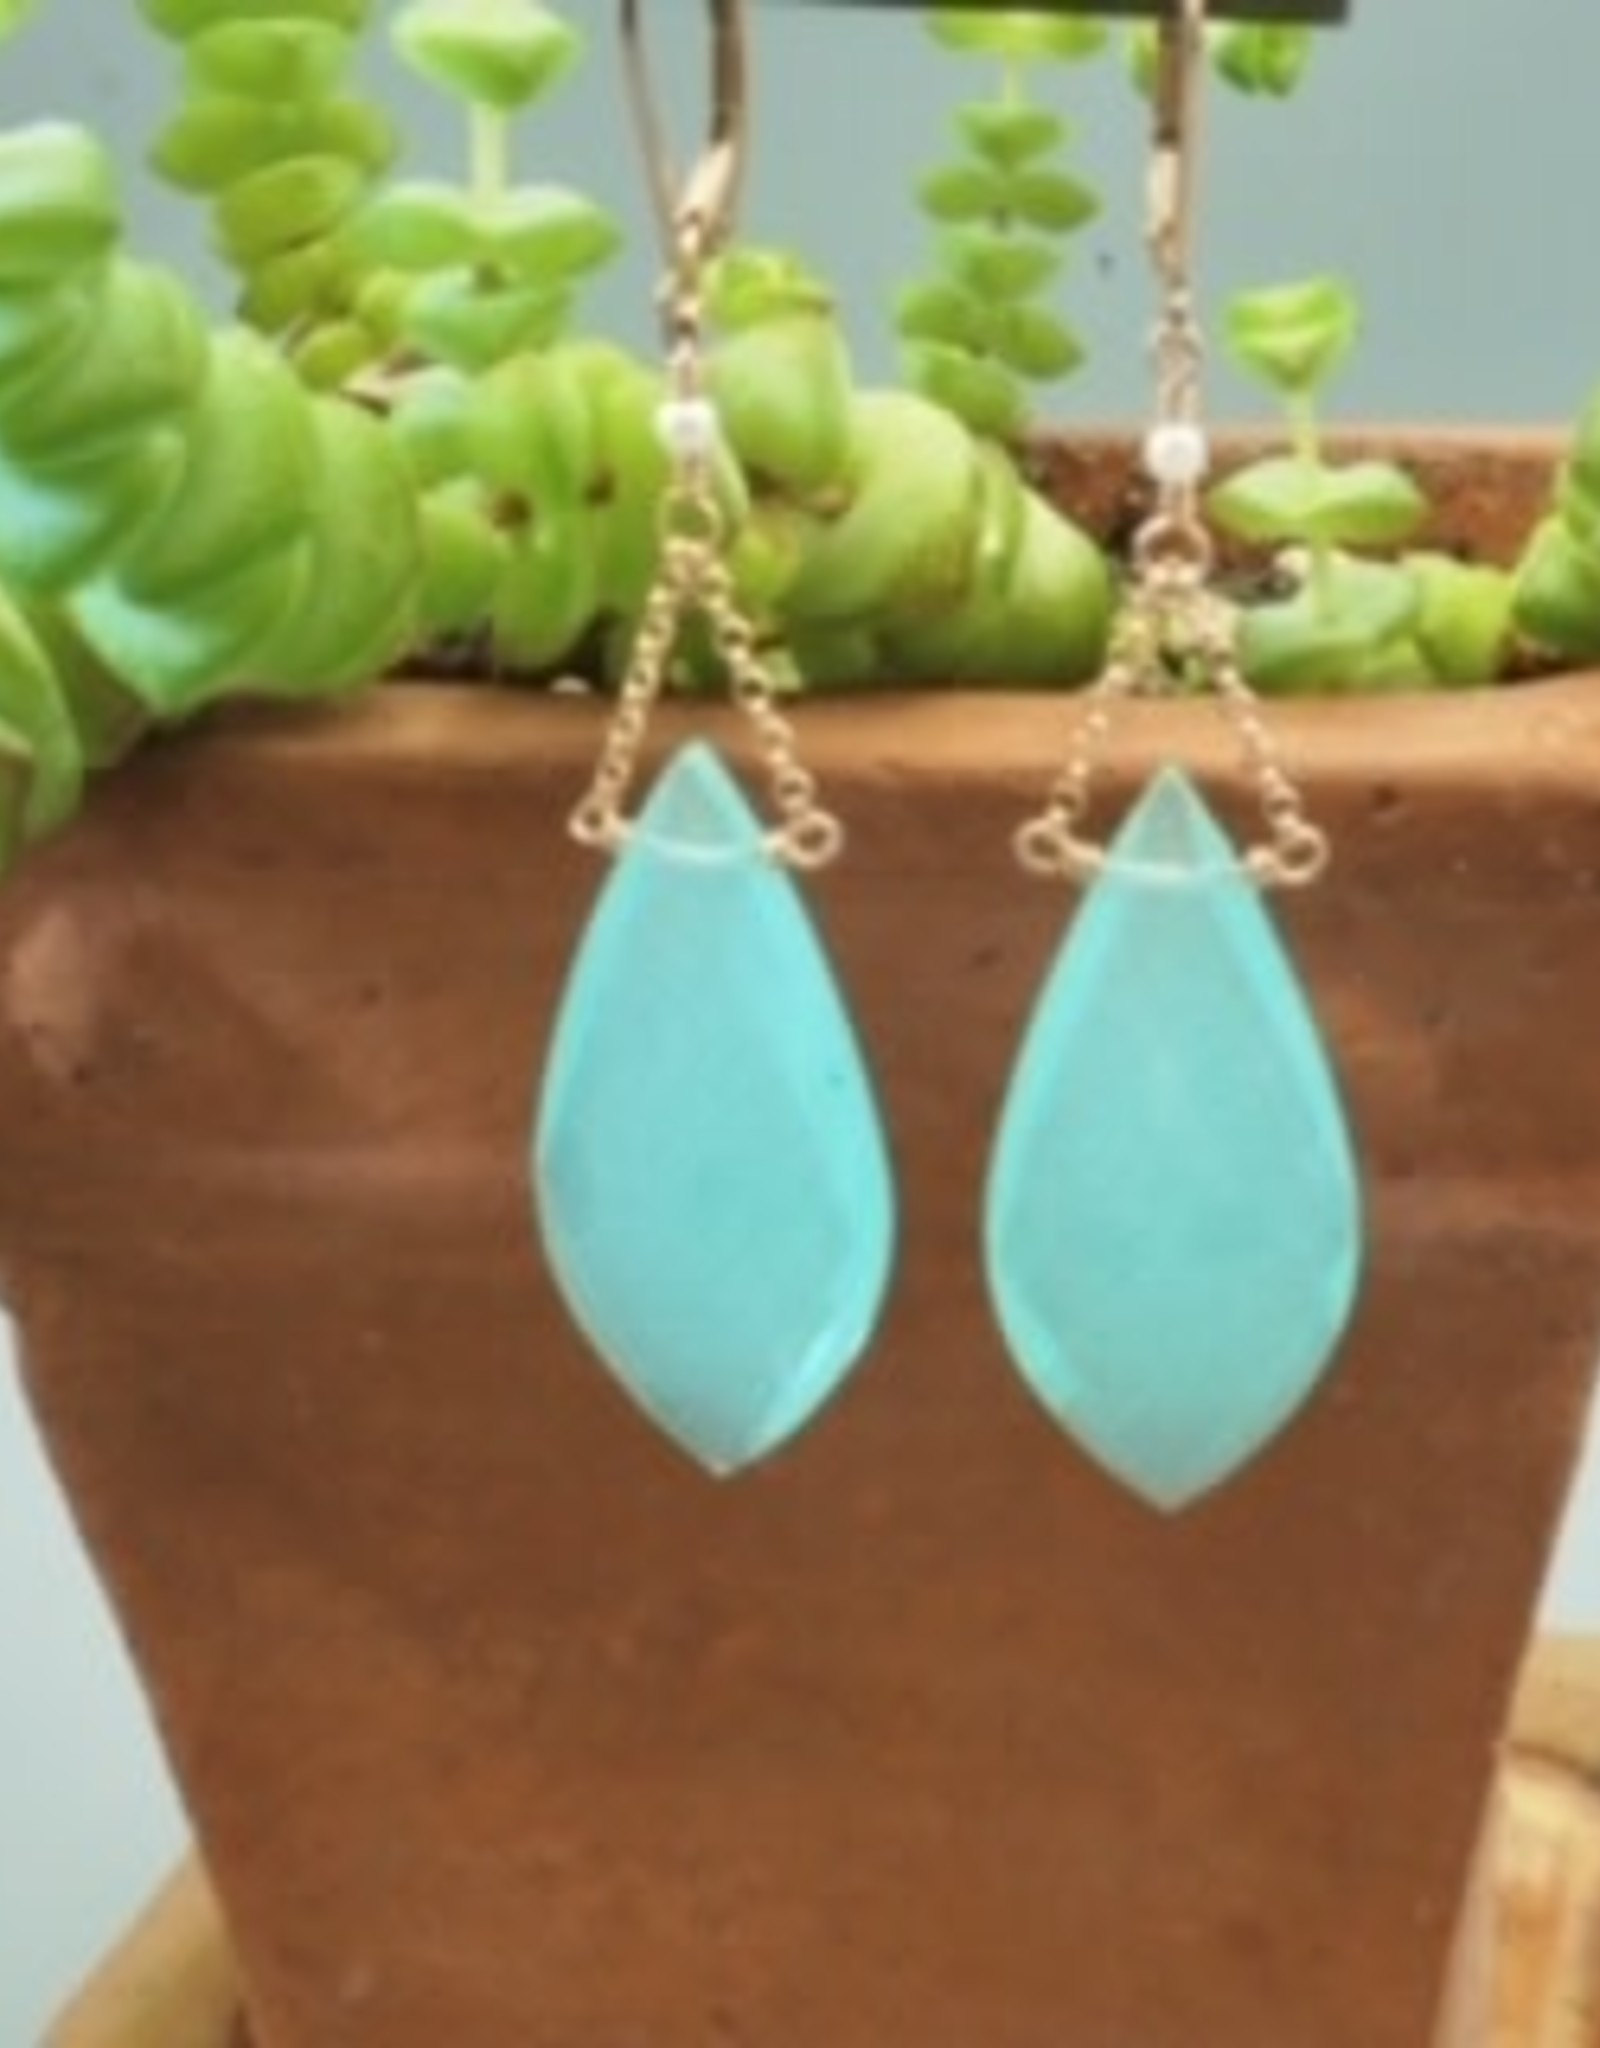 Faceted Chalcedony drops earrings in rose gold